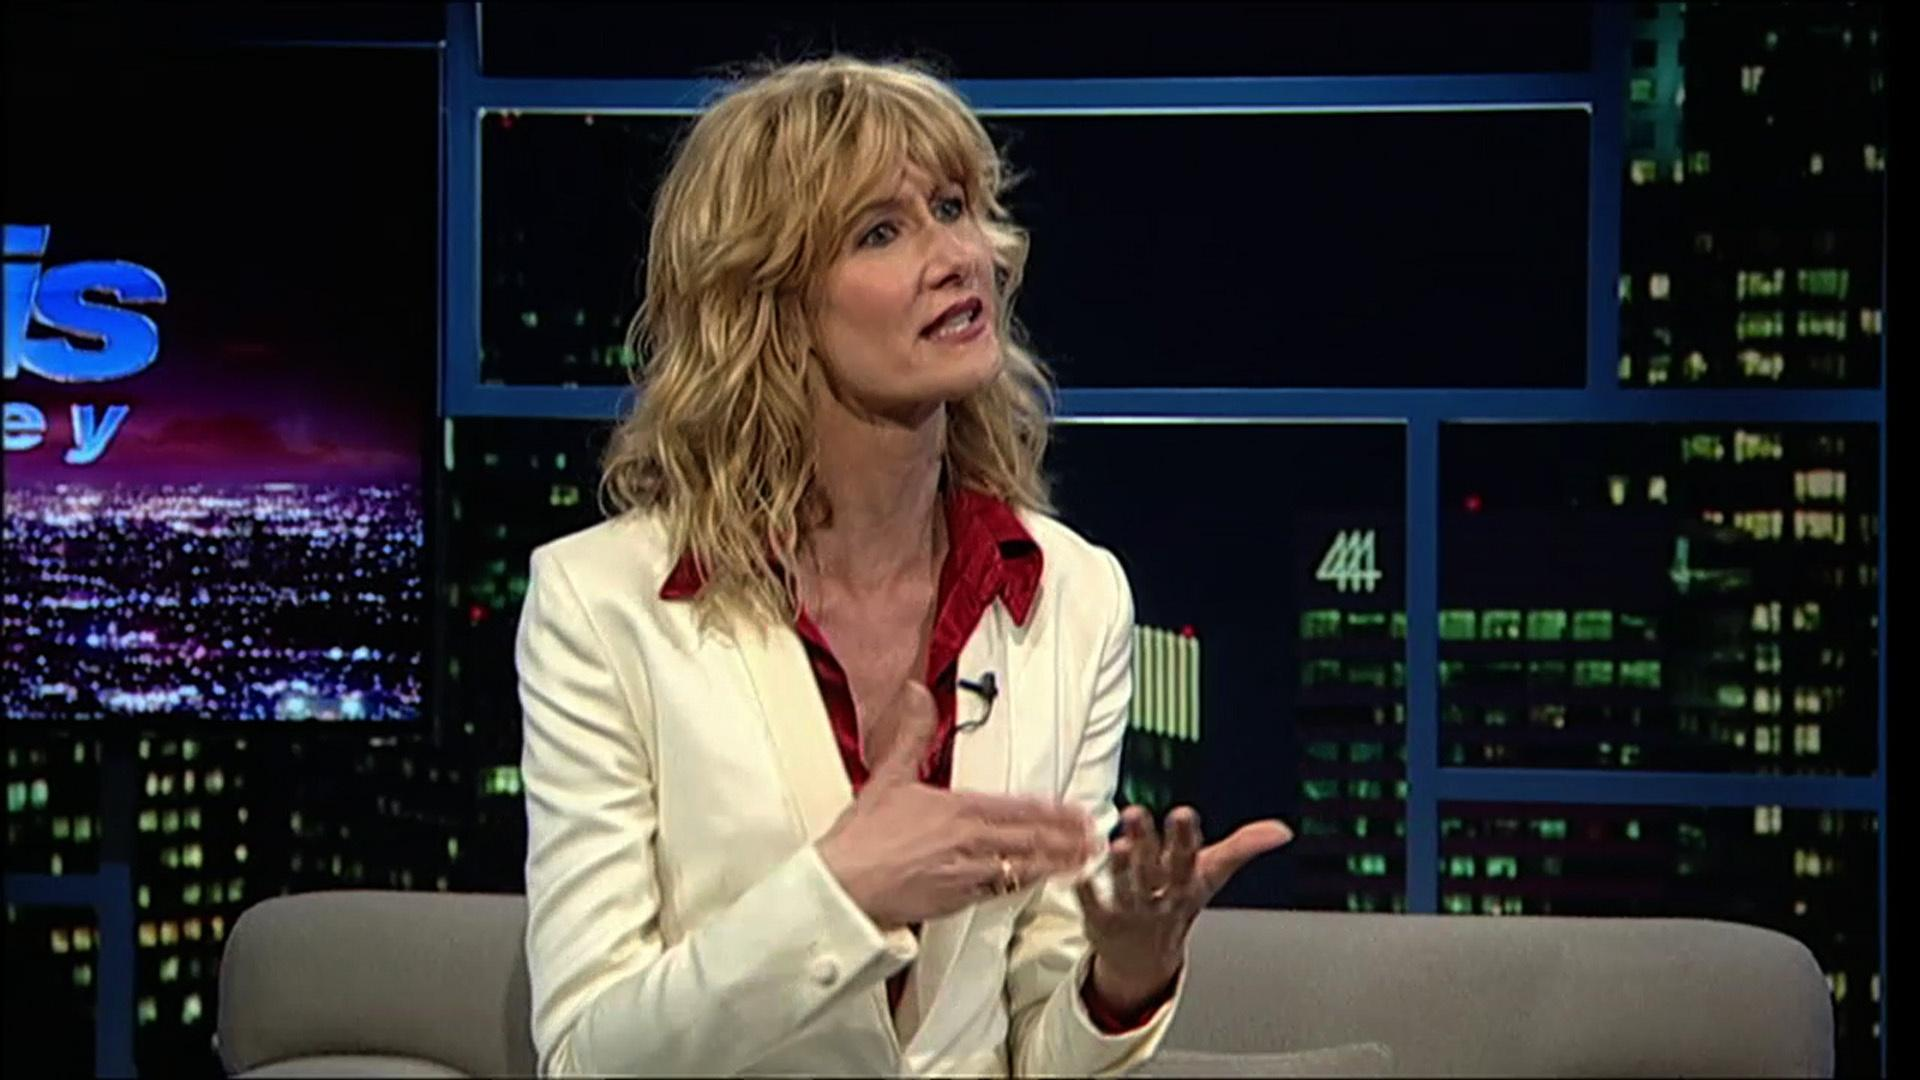 Actress Laura Dern: February 15th, 2013 image